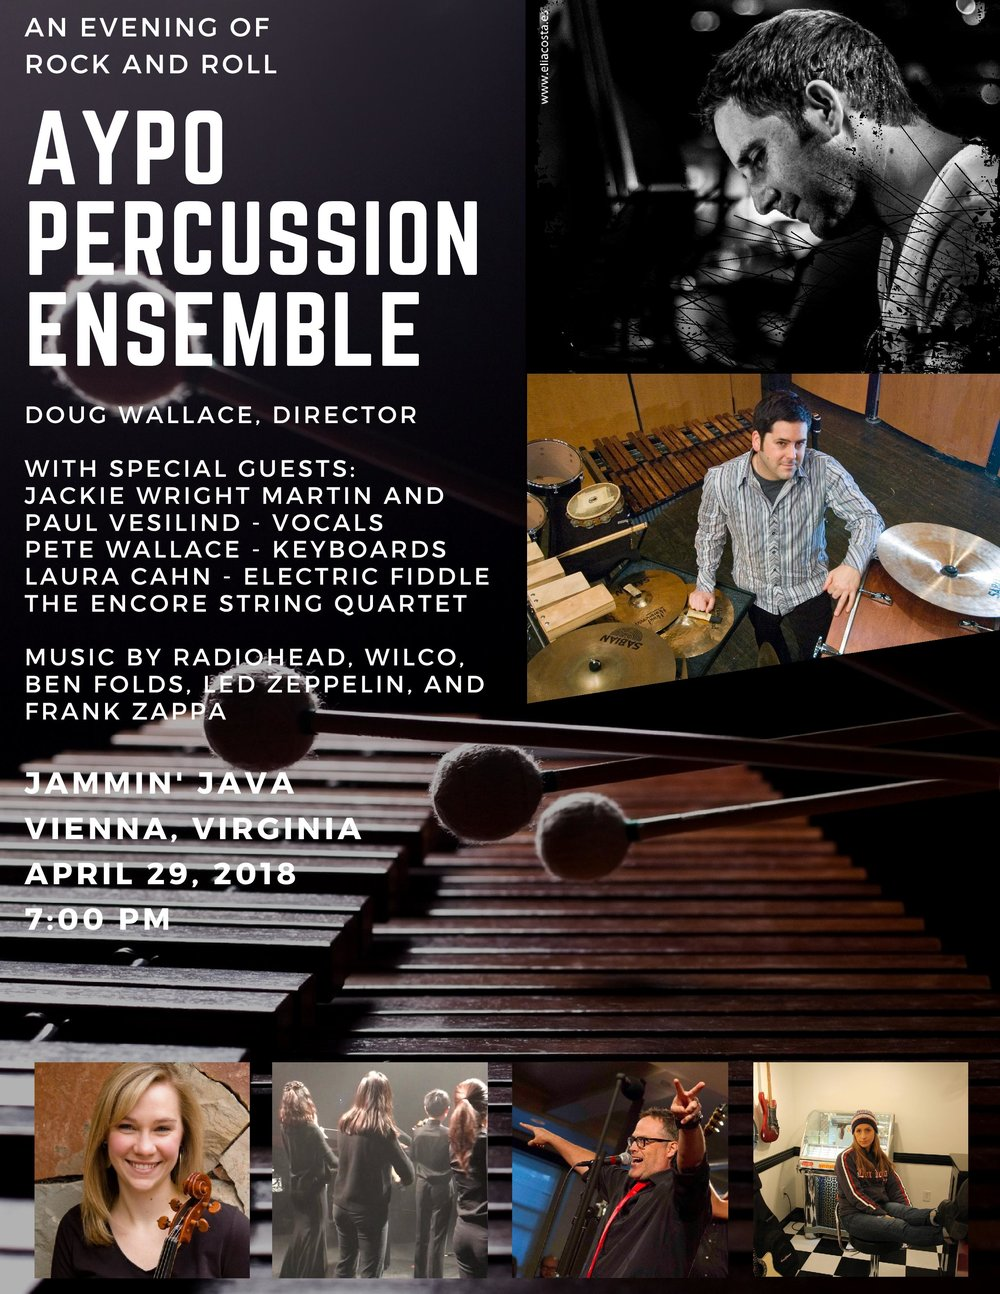 AYPO Percussion Ensemble 2018 at JJ-page-001.jpg